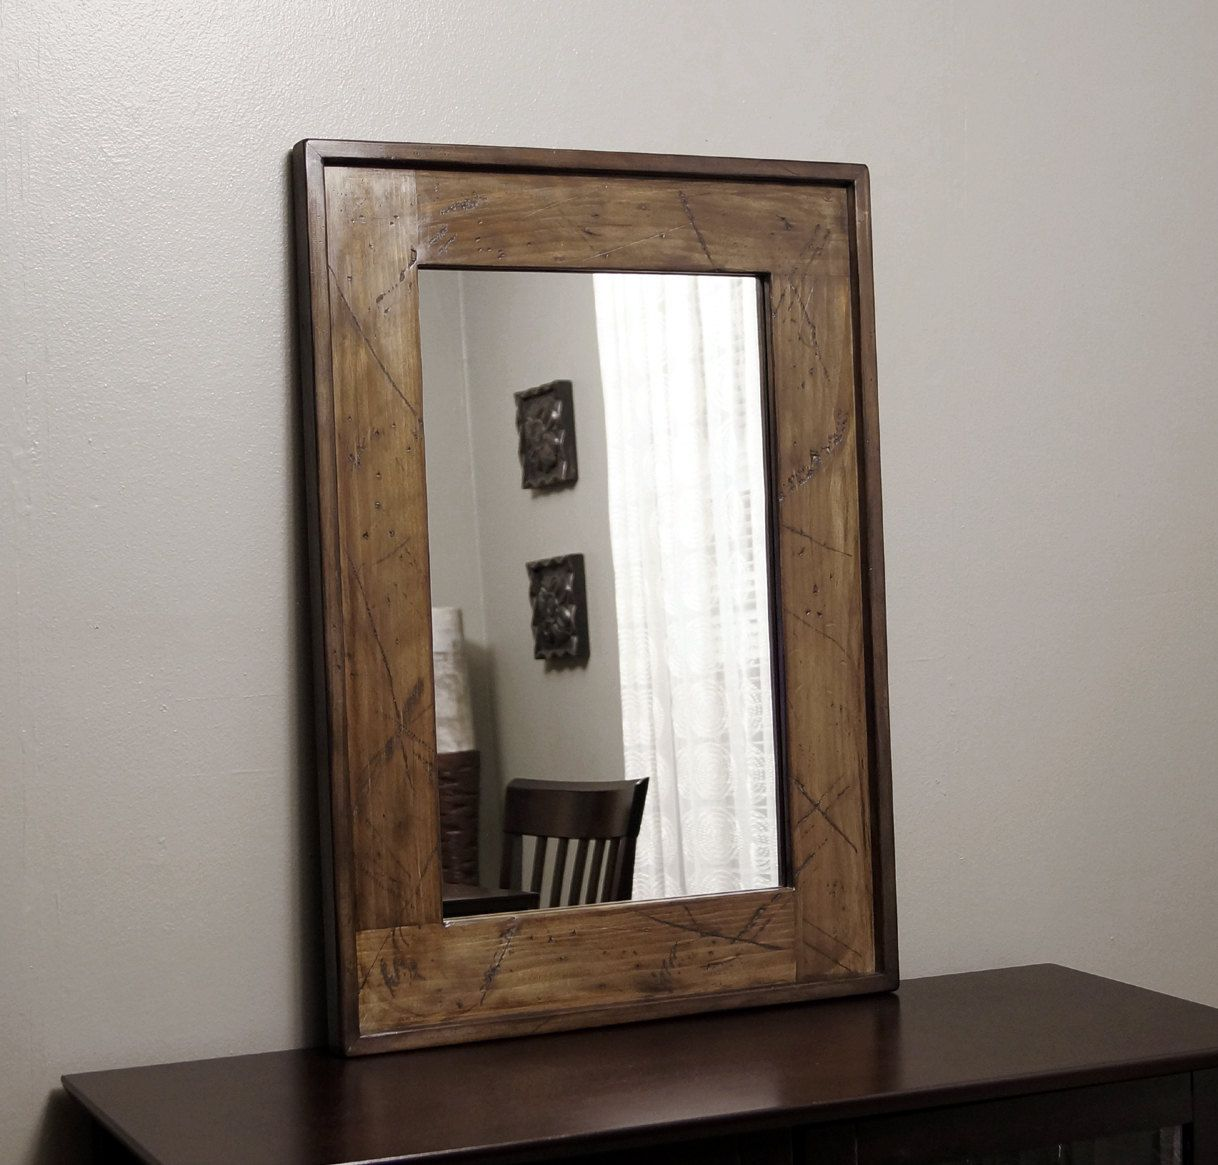 Rustic Framed Mirror Distressed Wood Brown Wall Decor